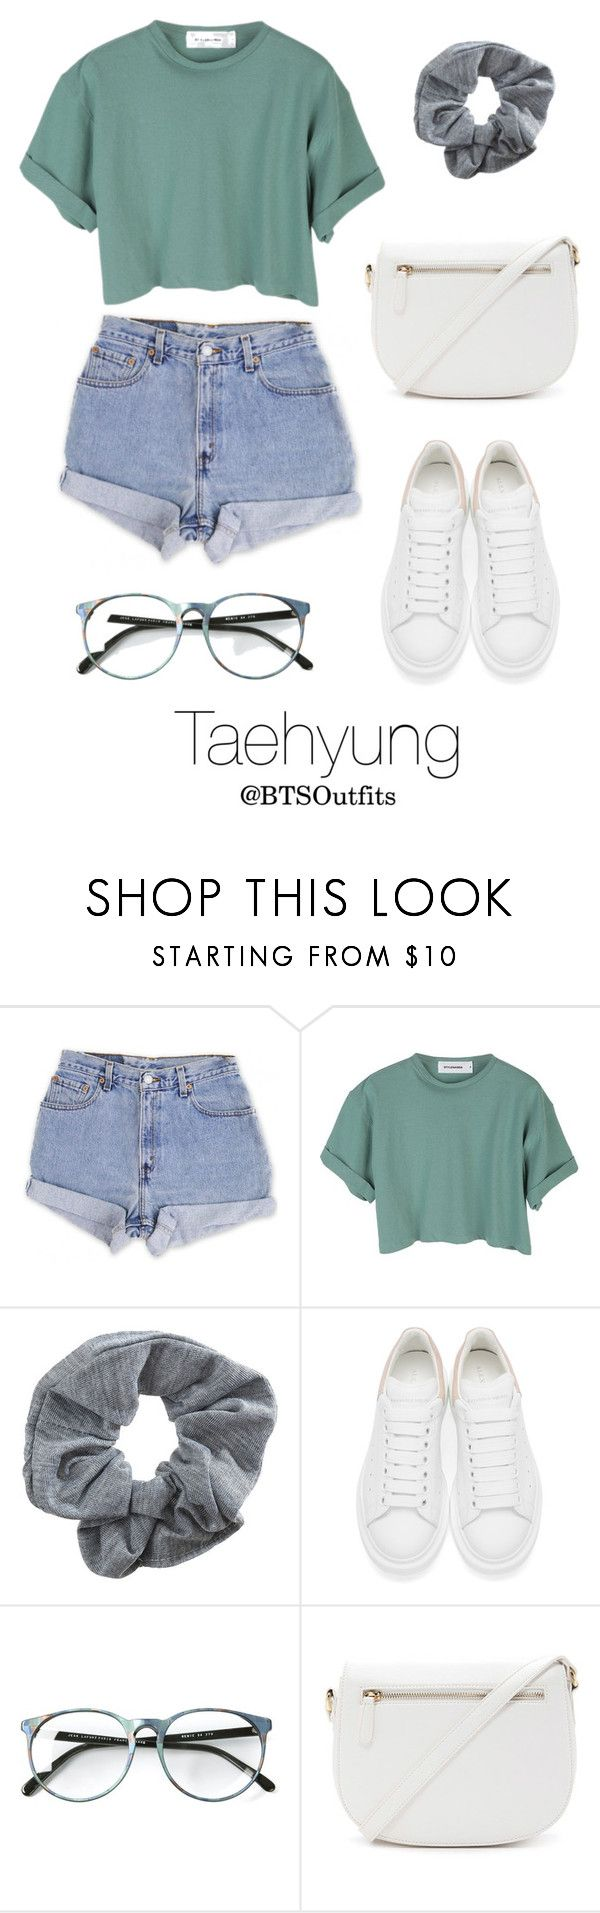 """""""Concert with Taehyung"""" by btsoutfits ❤ liked on Polyvore featuring Levi's, Topshop, Alexander McQueen and Forever 21"""